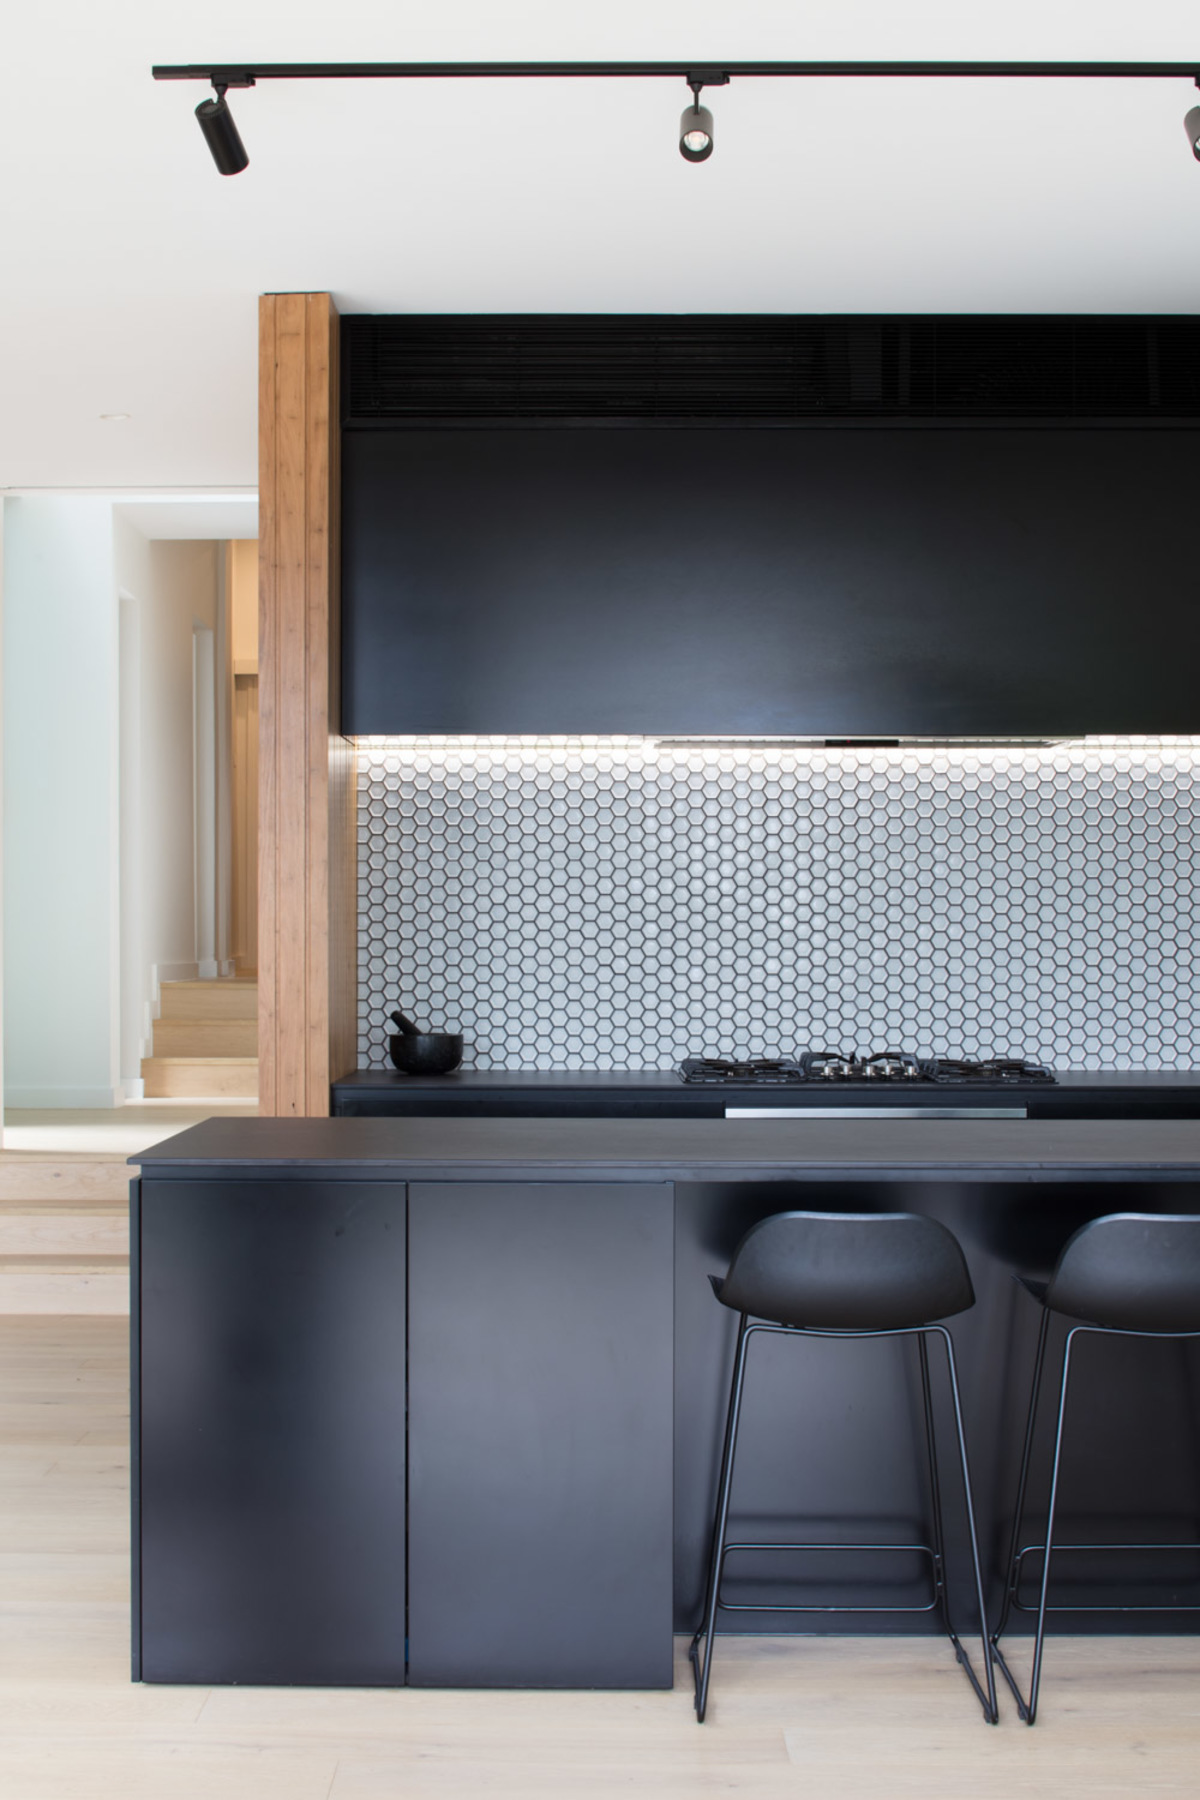 The kitchen in black and regular timber